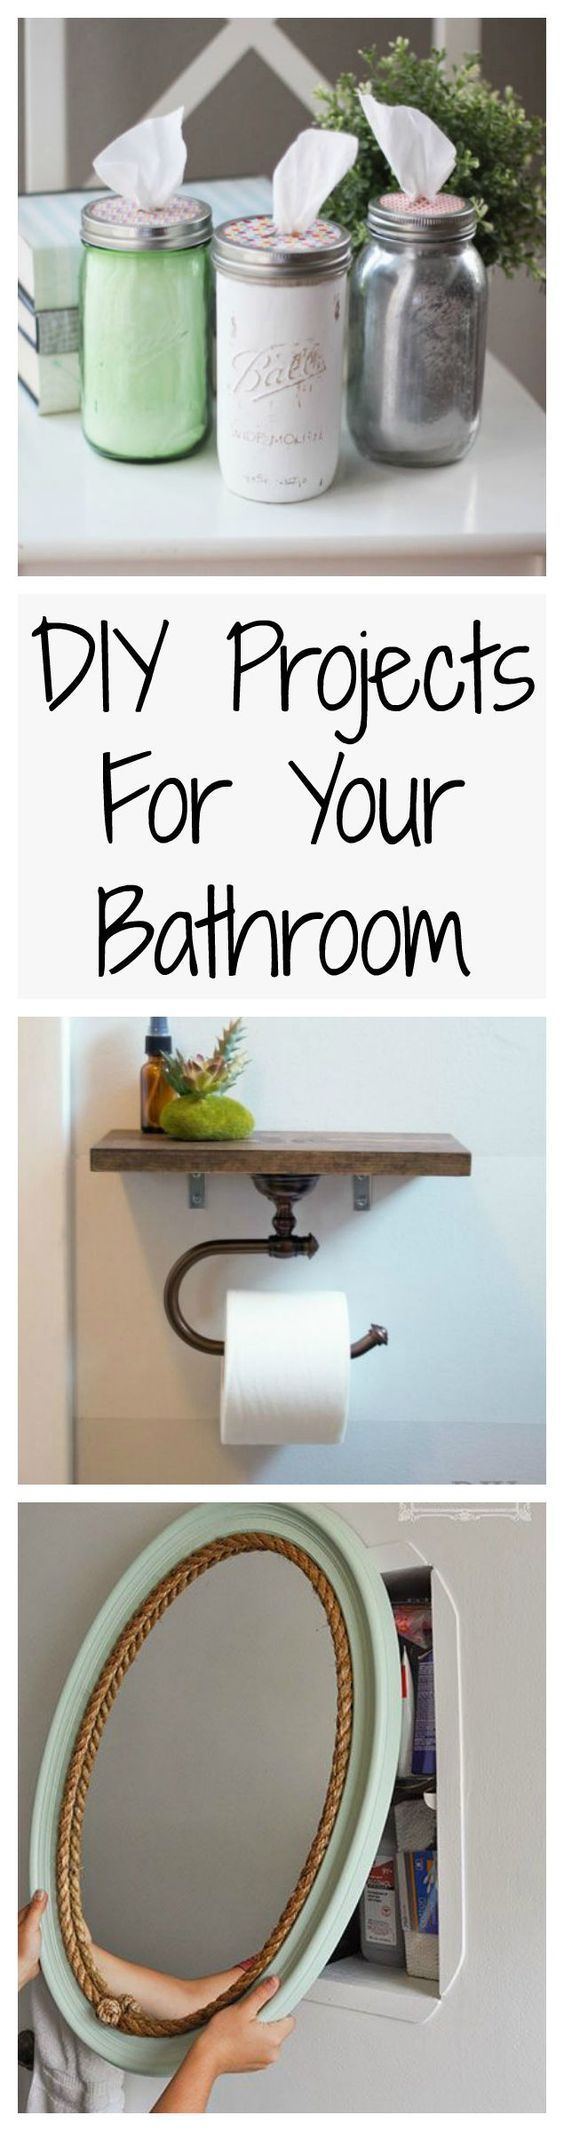 boots shoes online shopping Your bathroom should be just as pretty as all the other rooms in your house  and these easy DIY projects could help make that happen